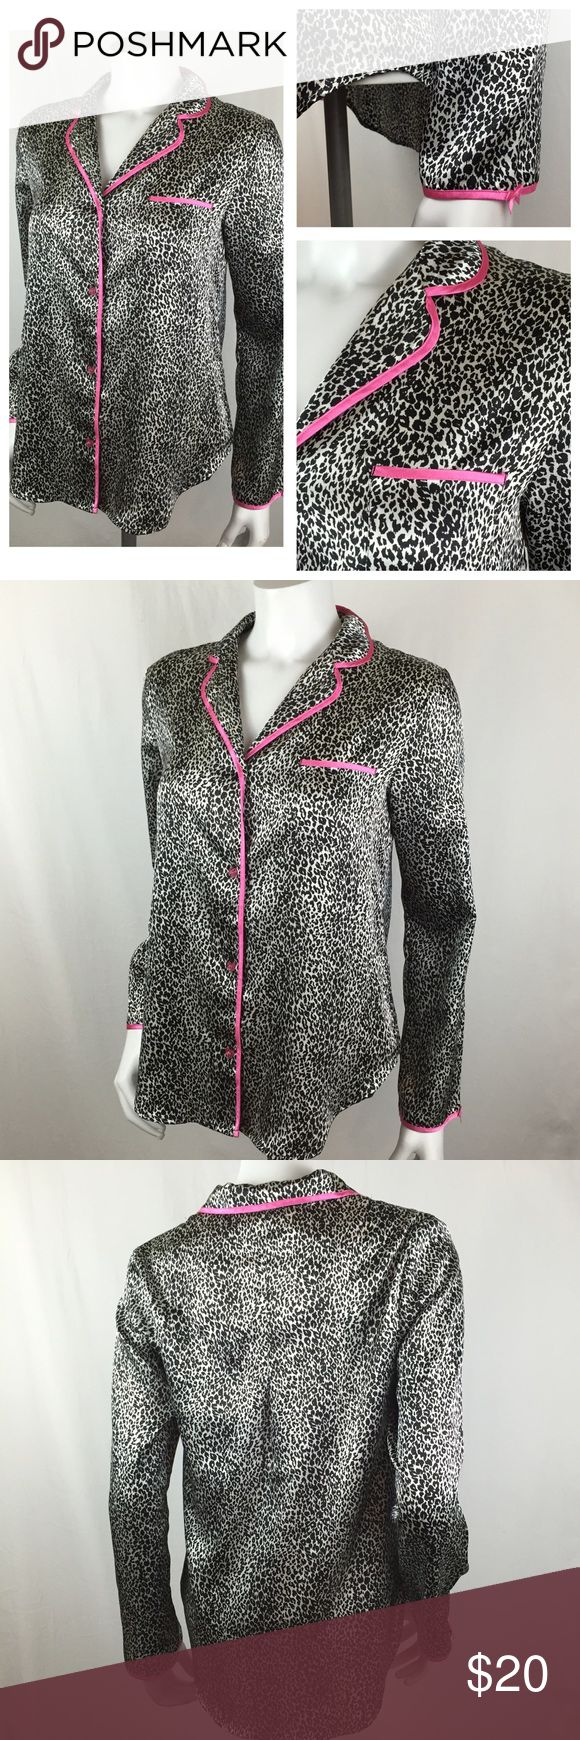 Betsey Johnson Intimates Leopard Silky Sleep Shirt Ultra sleek Betsey Johnson Intimates Leopard Silky Sleep Shirt. Nice cheetah print with a cute pocket. Very soft and silky. Adorable heart shaped buttons down the front. Perfect with black leggings or shorts. Size medium in great condition. Betsey Johnson Intimates & Sleepwear Pajamas